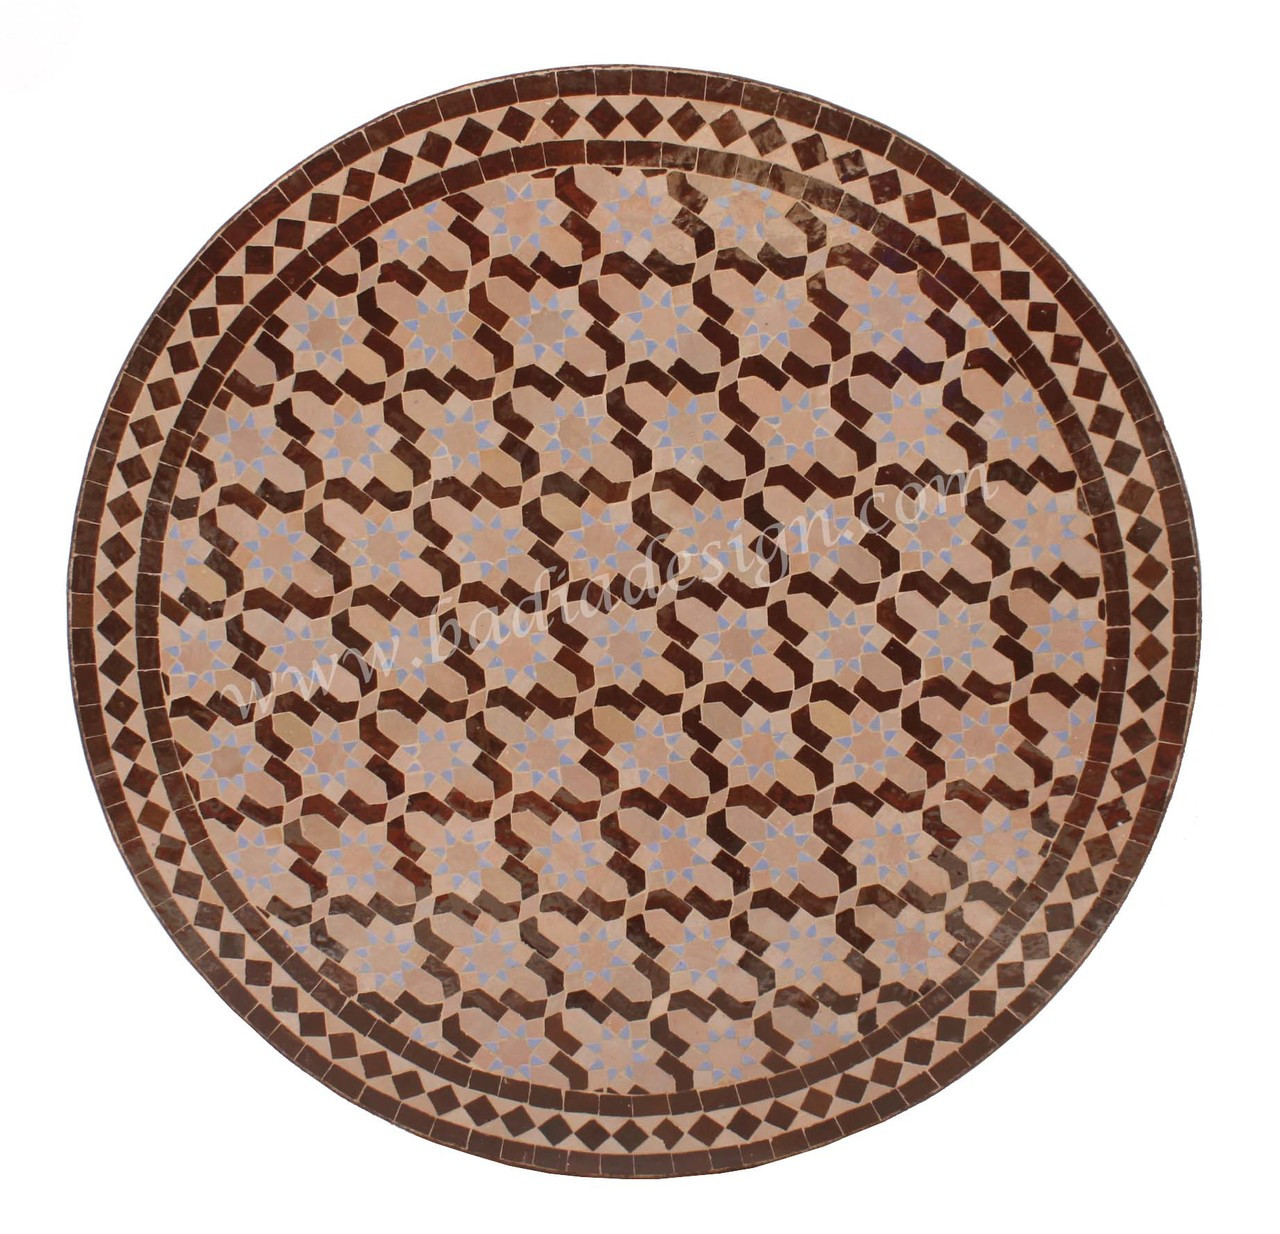 32 Inch Round Mosaic Tile Table Top Mtr245